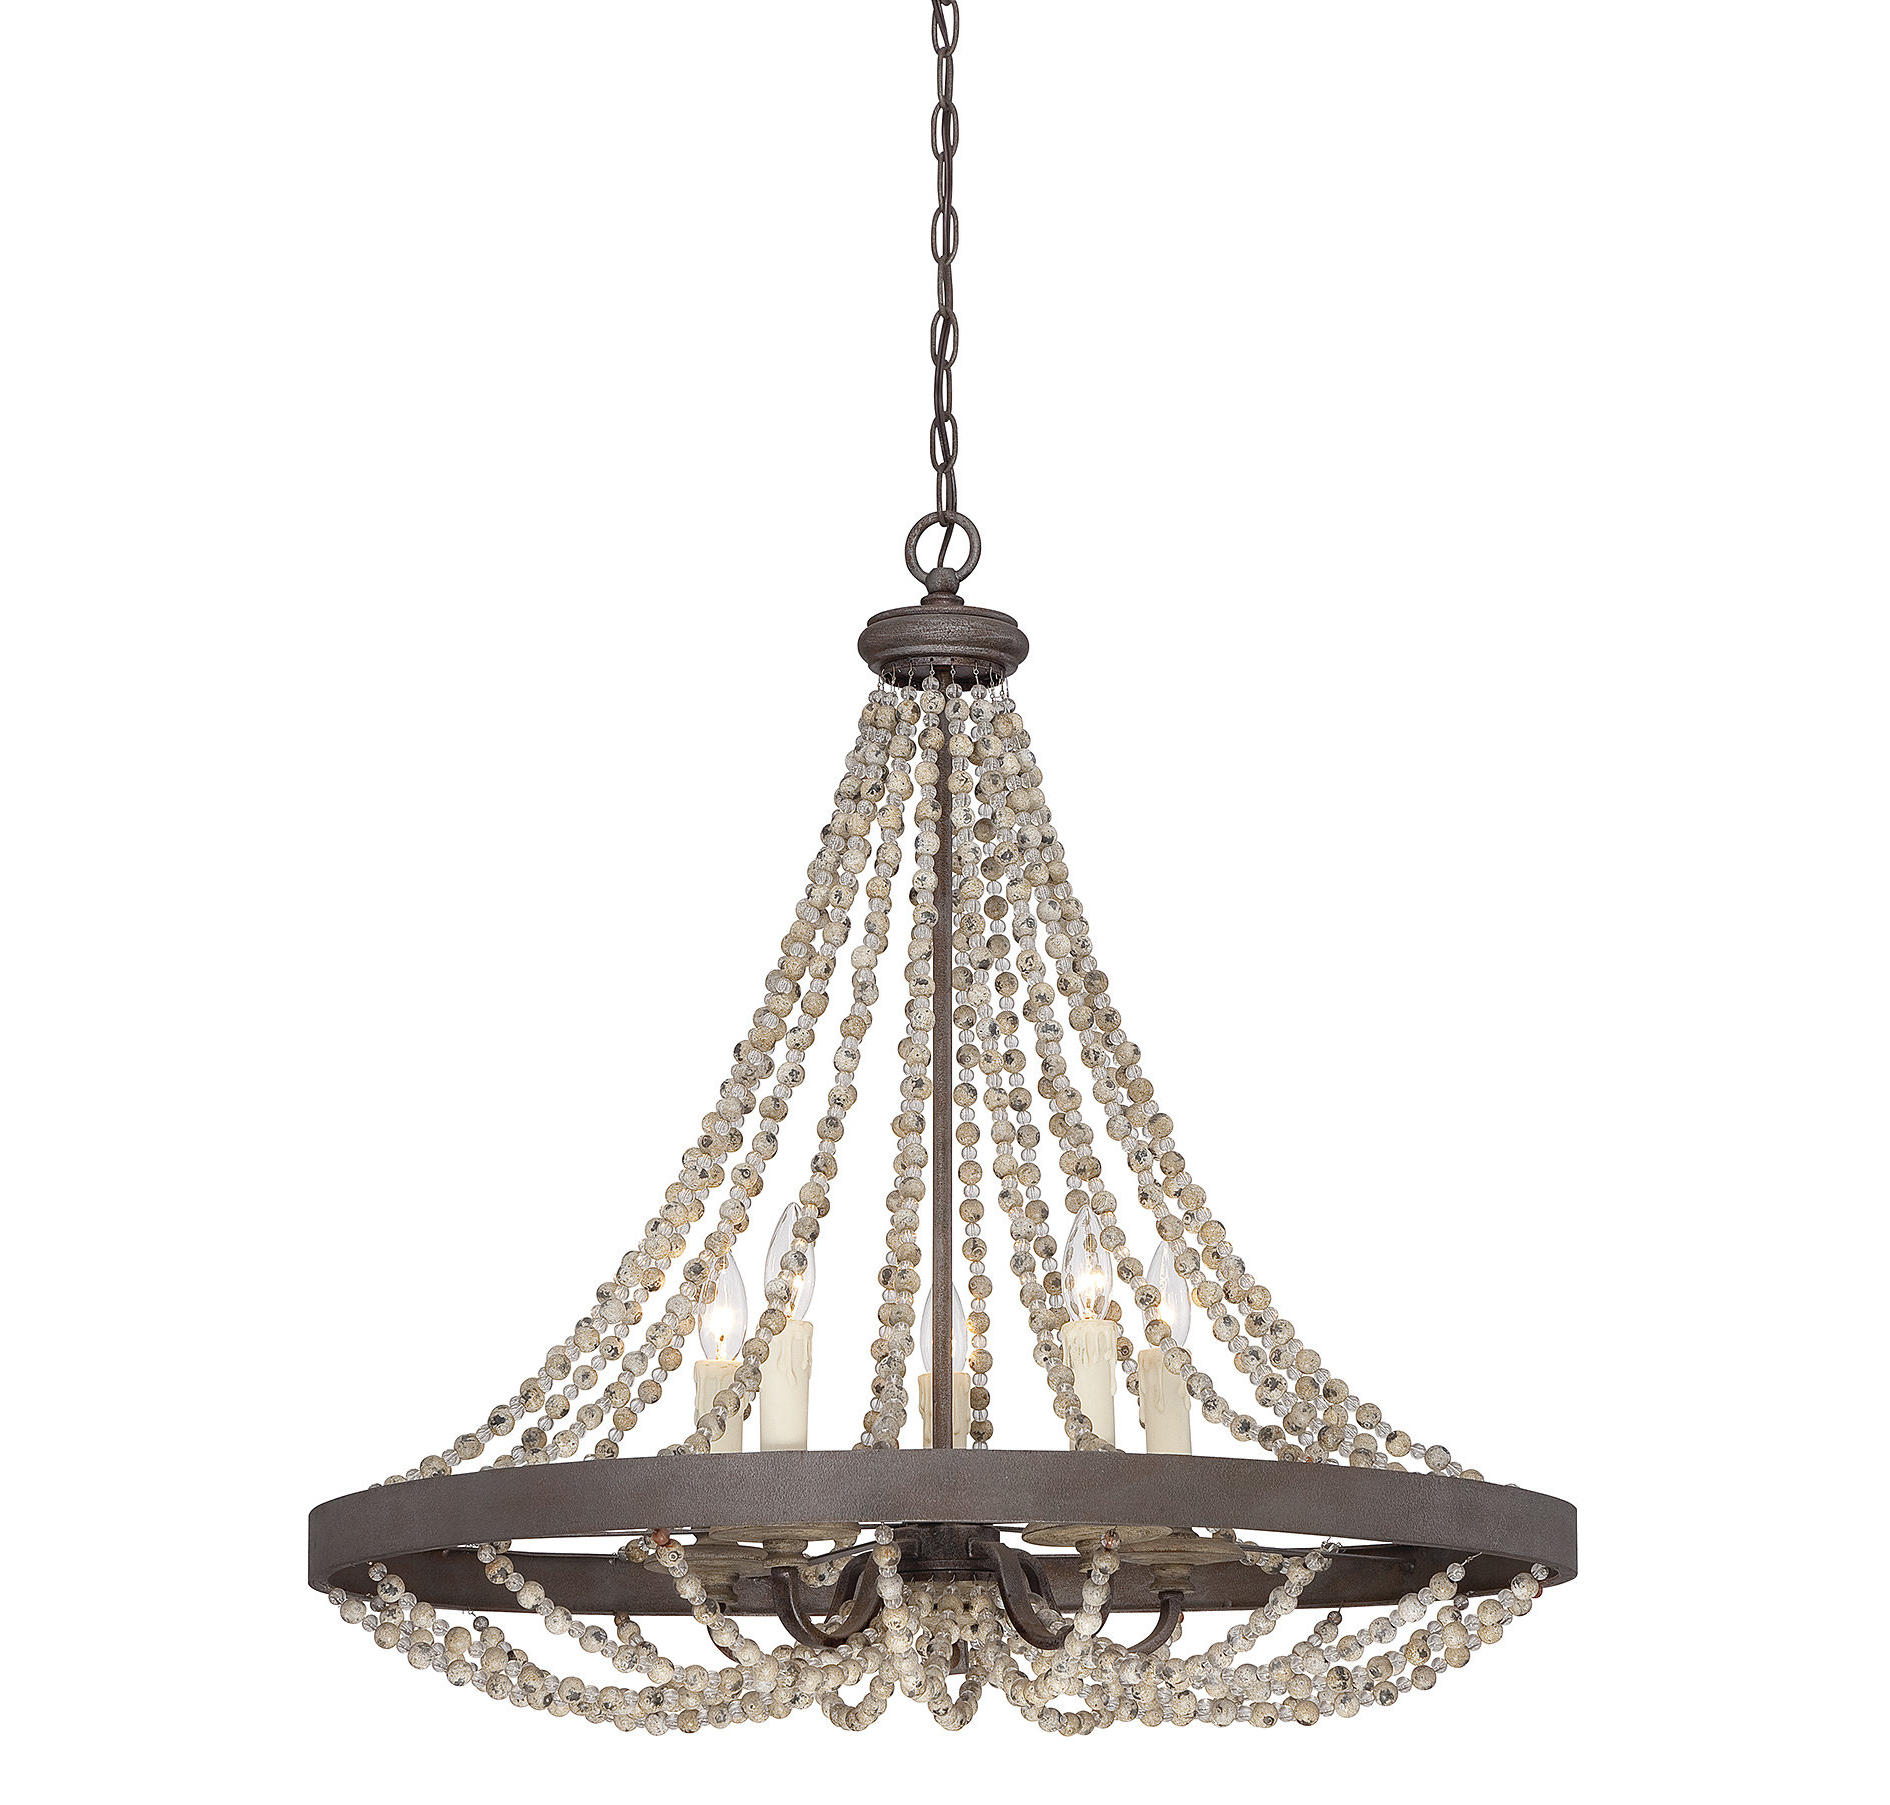 Ladonna 5 Light Novelty Chandeliers Intended For Widely Used Ladonna 5 Light Novelty Chandelier (View 1 of 20)